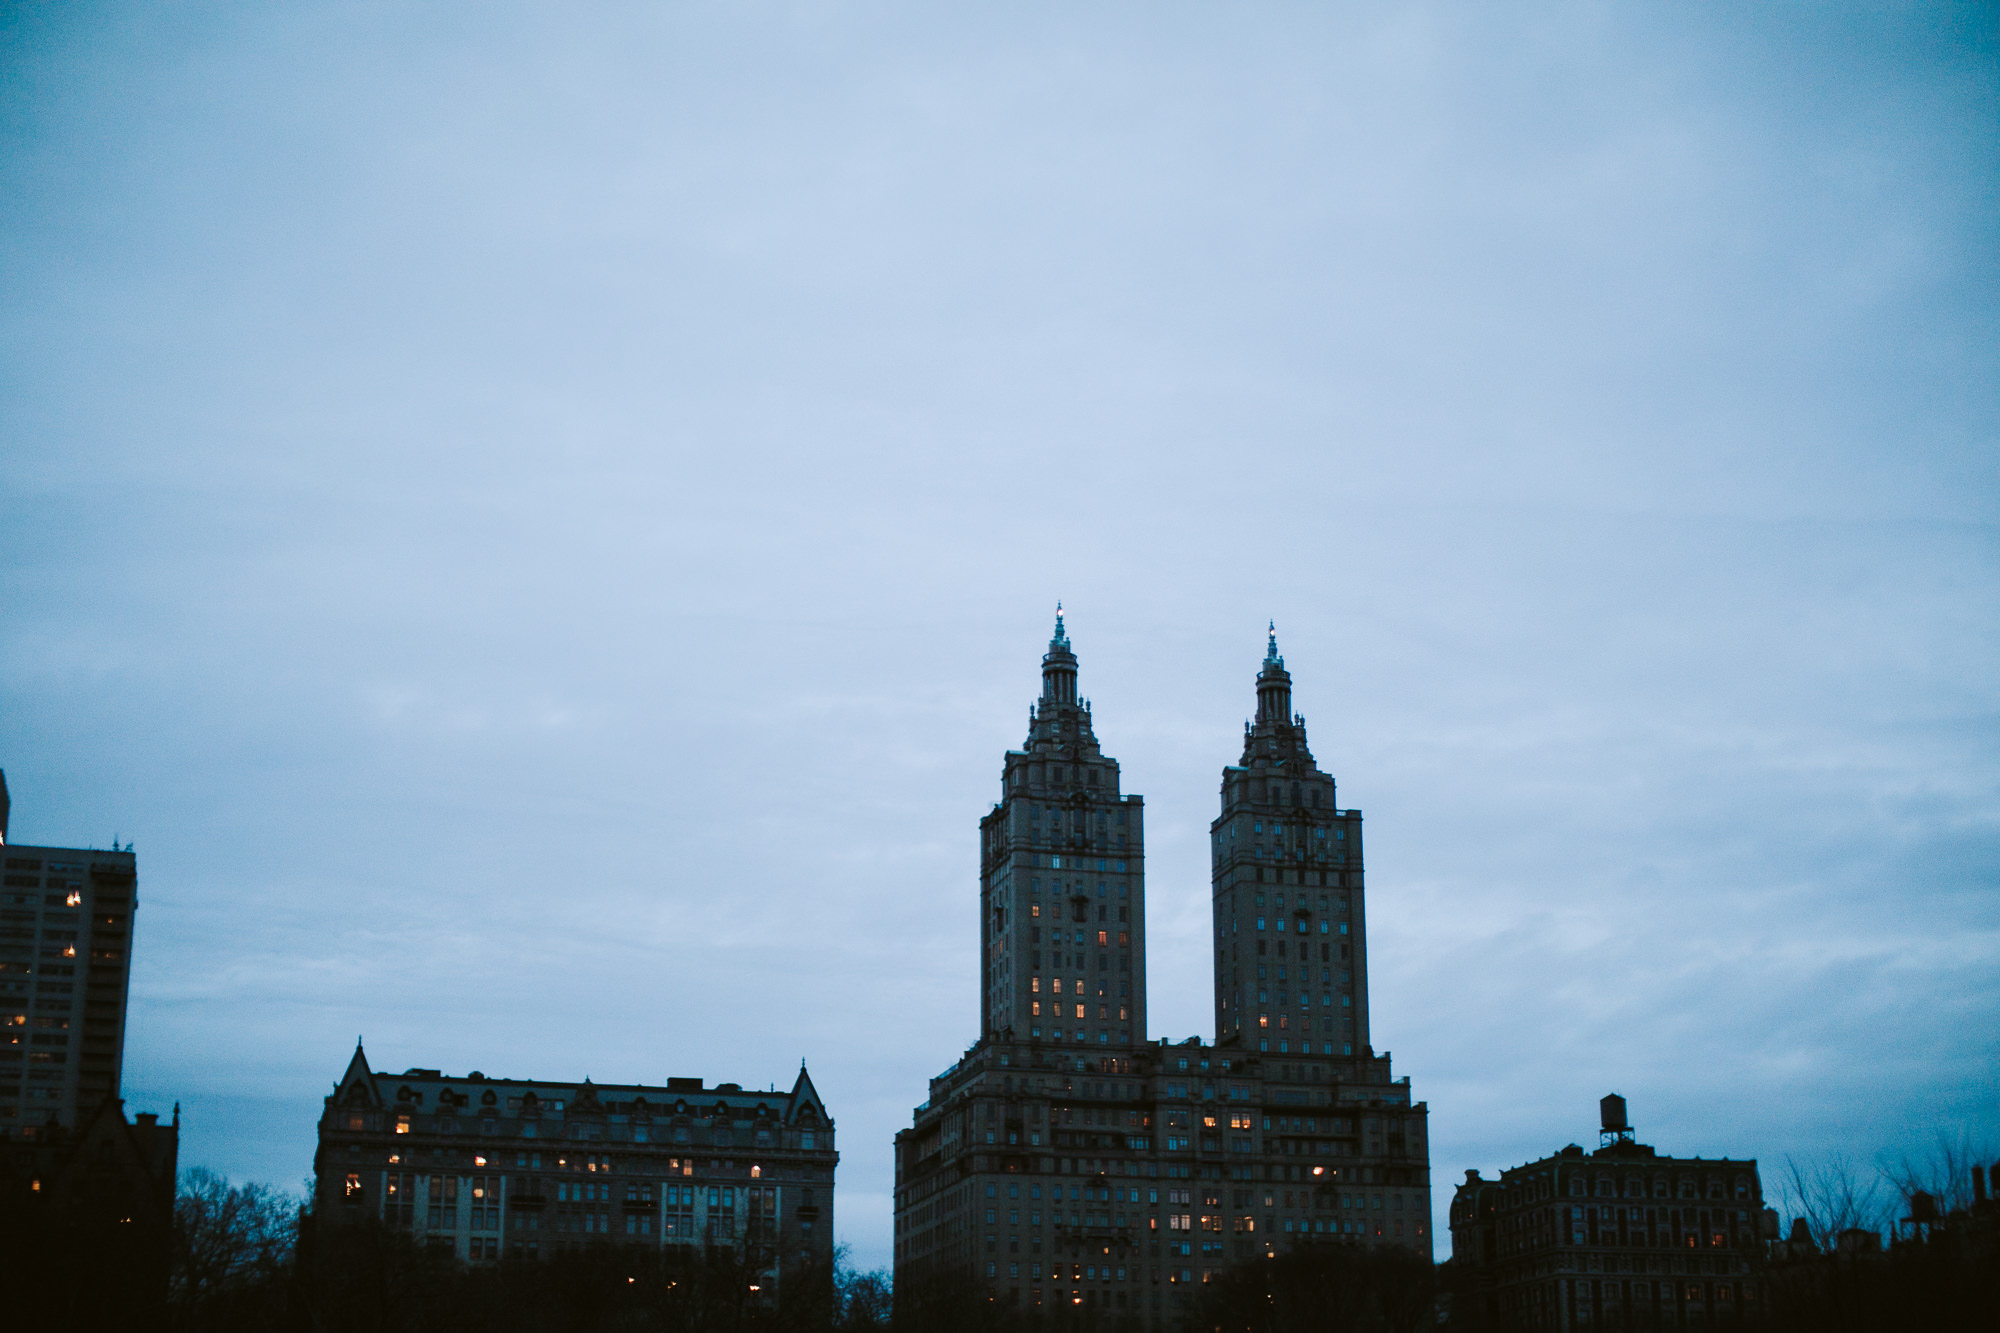 nyc_wedding_photographer_alfonso_flores-50.jpg